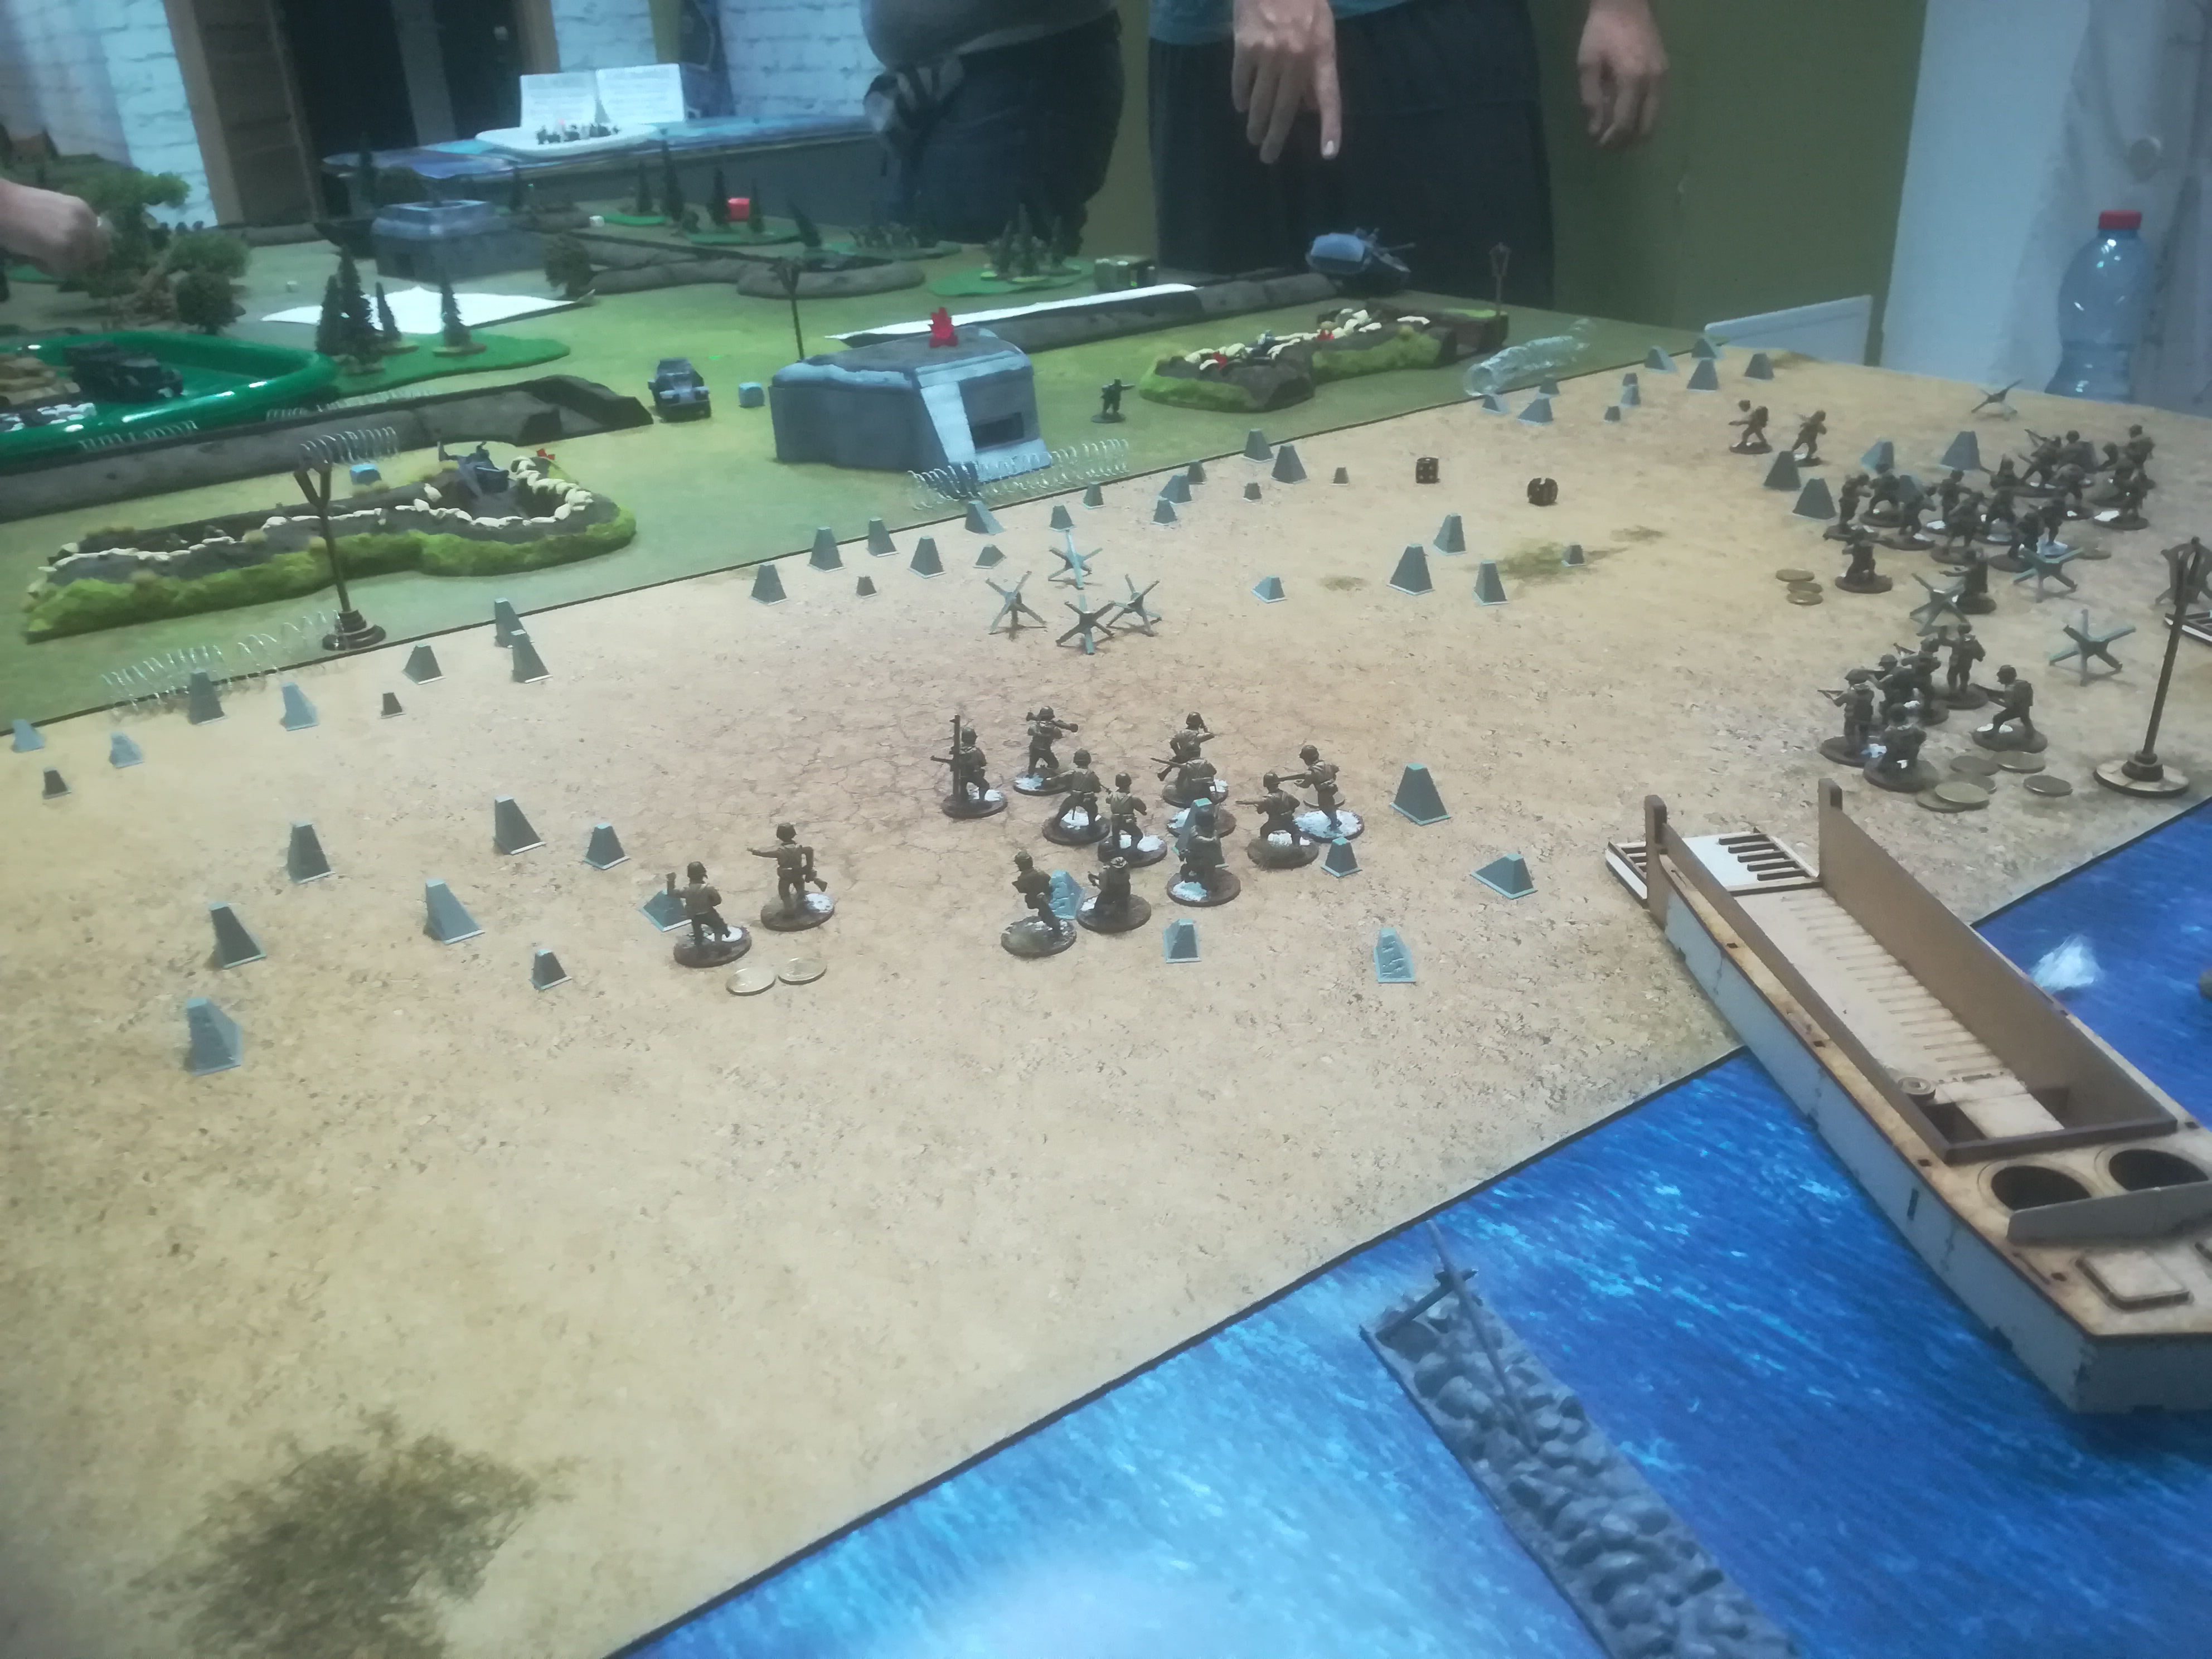 White Fire Batalion versus Fallschirmjager Sturmgruppe 7 in a fierce infantry engagement